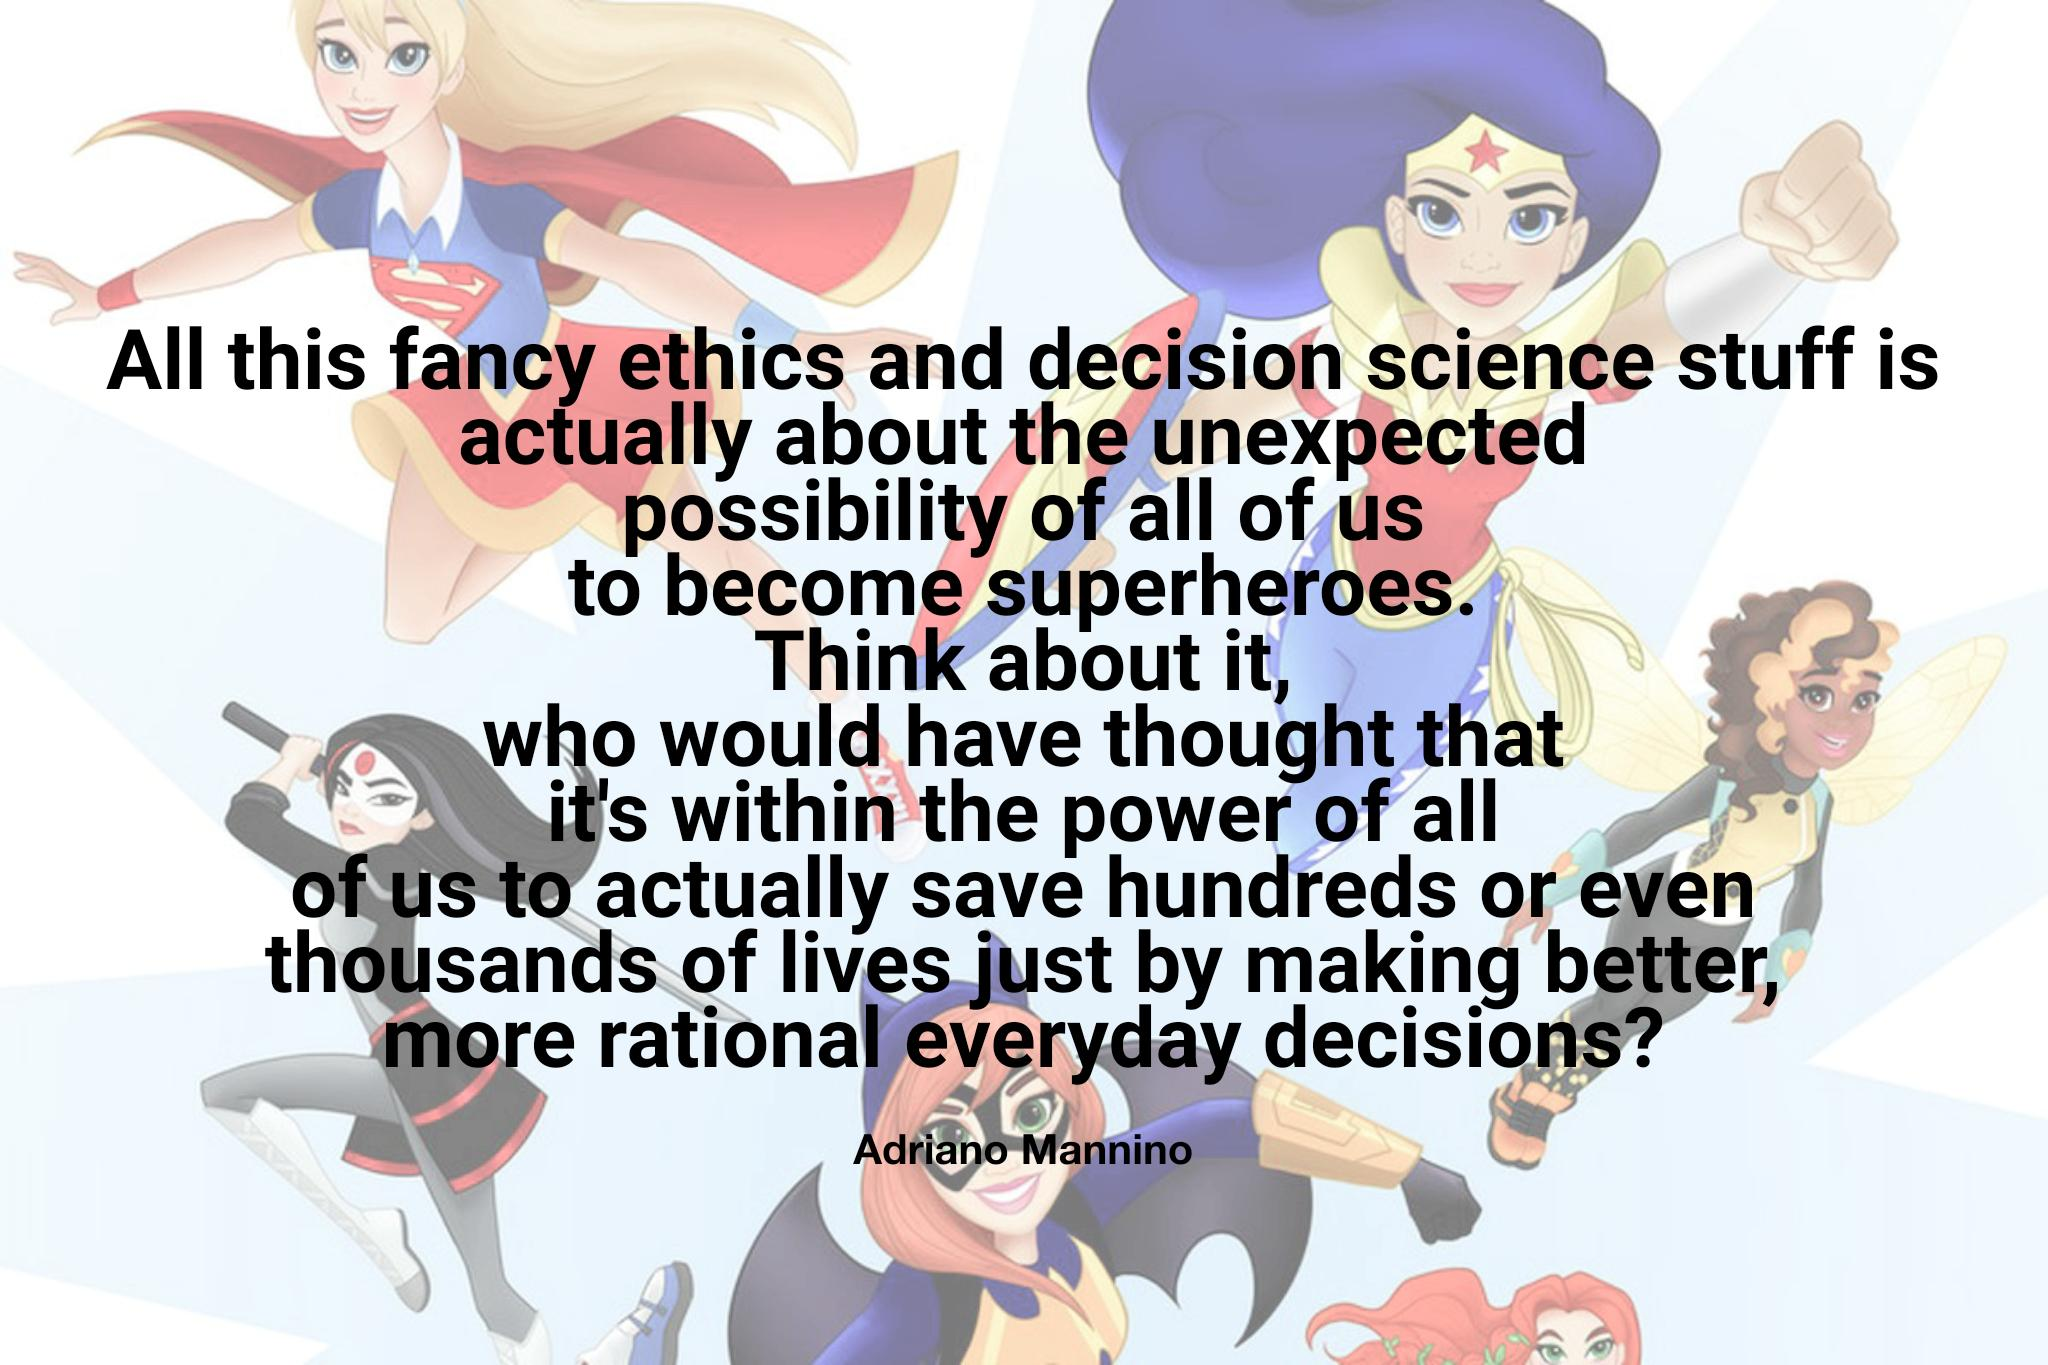 """All of this fancy ethics and decision science stuff is actually about the unexpected possibility for all of us to become superheroes. Think about it, who would have thought that it's within the power of all of us to actually save hundreds or even thousands of lives…"" -Adriano Mannino [2048×1365]"